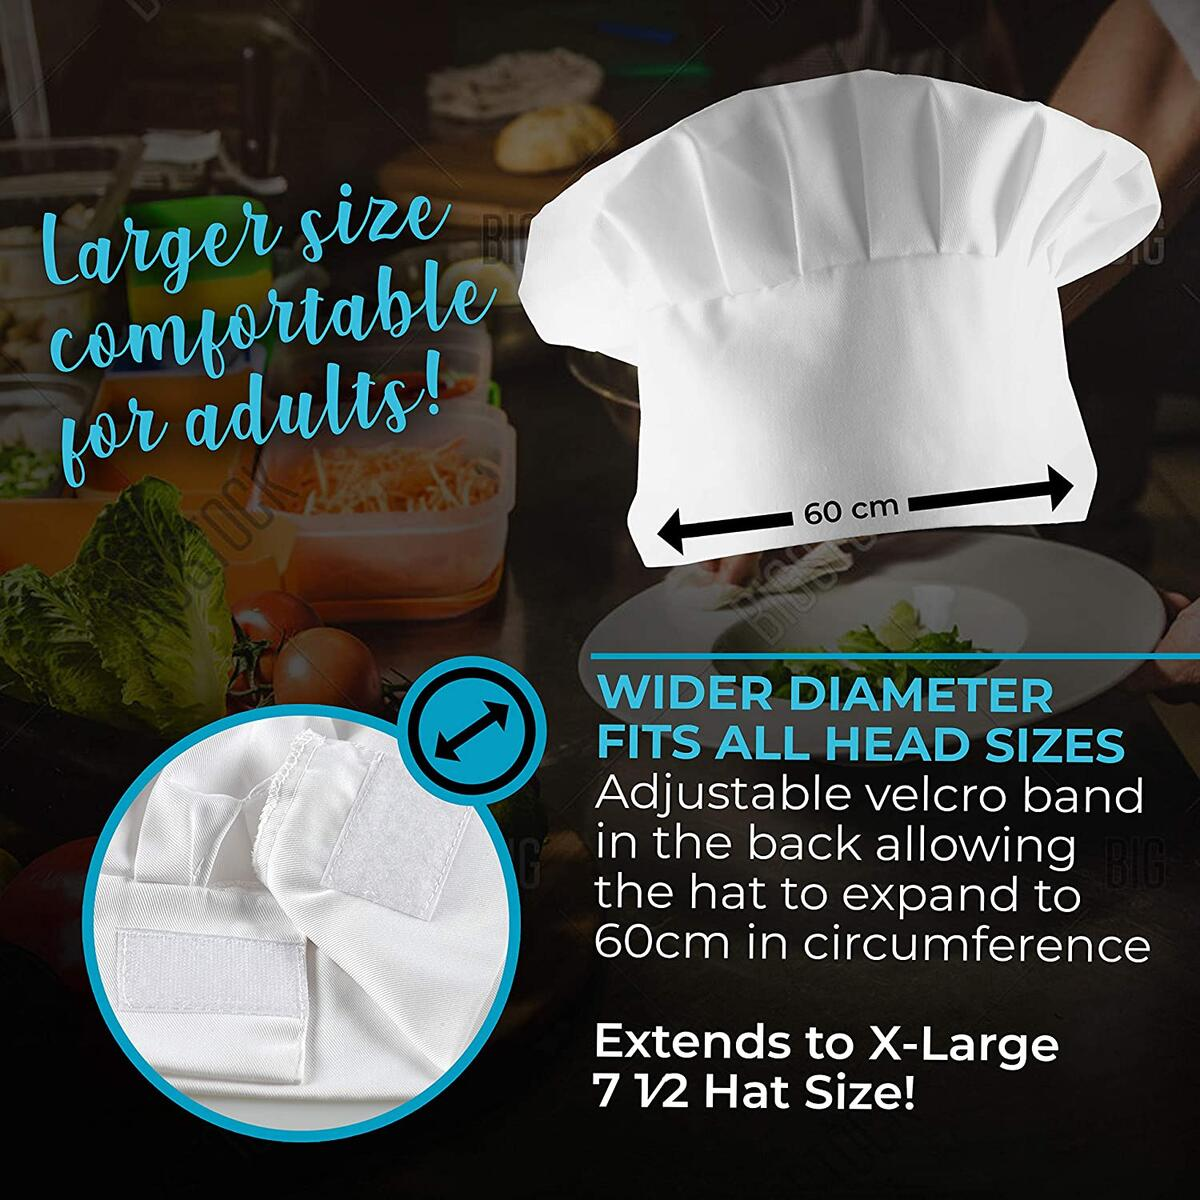 Extra Large Adult White Chef Toque Hat with Larger Diameter - Adjustable Fastening Band to Fit All Head Sizes - Professional Reusable for Men or Women